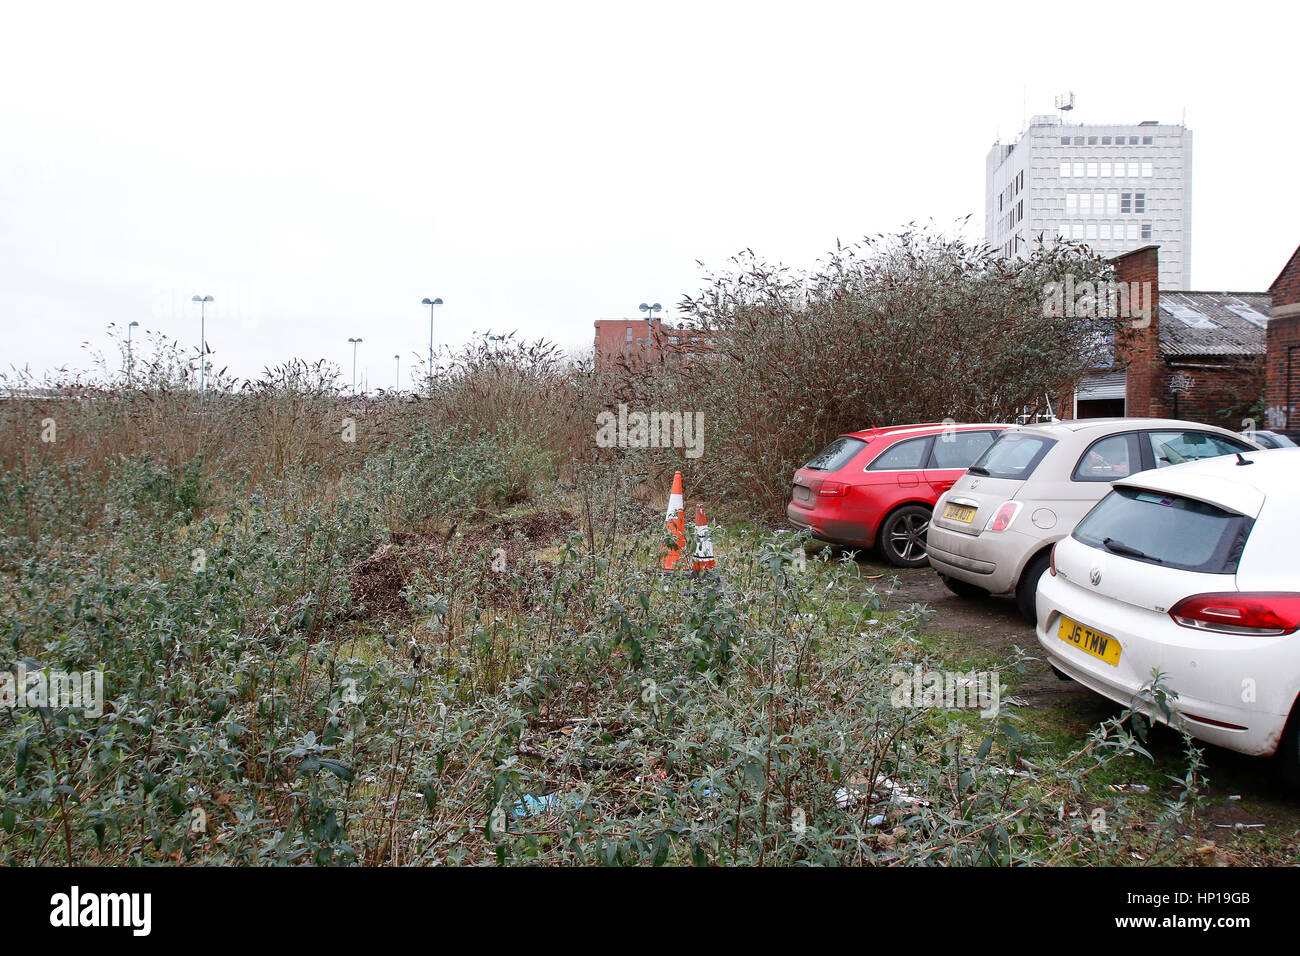 Brownfield land in Stoke-on-Trent, Staffordshire. UK. 17th February 2017. Stock Photo